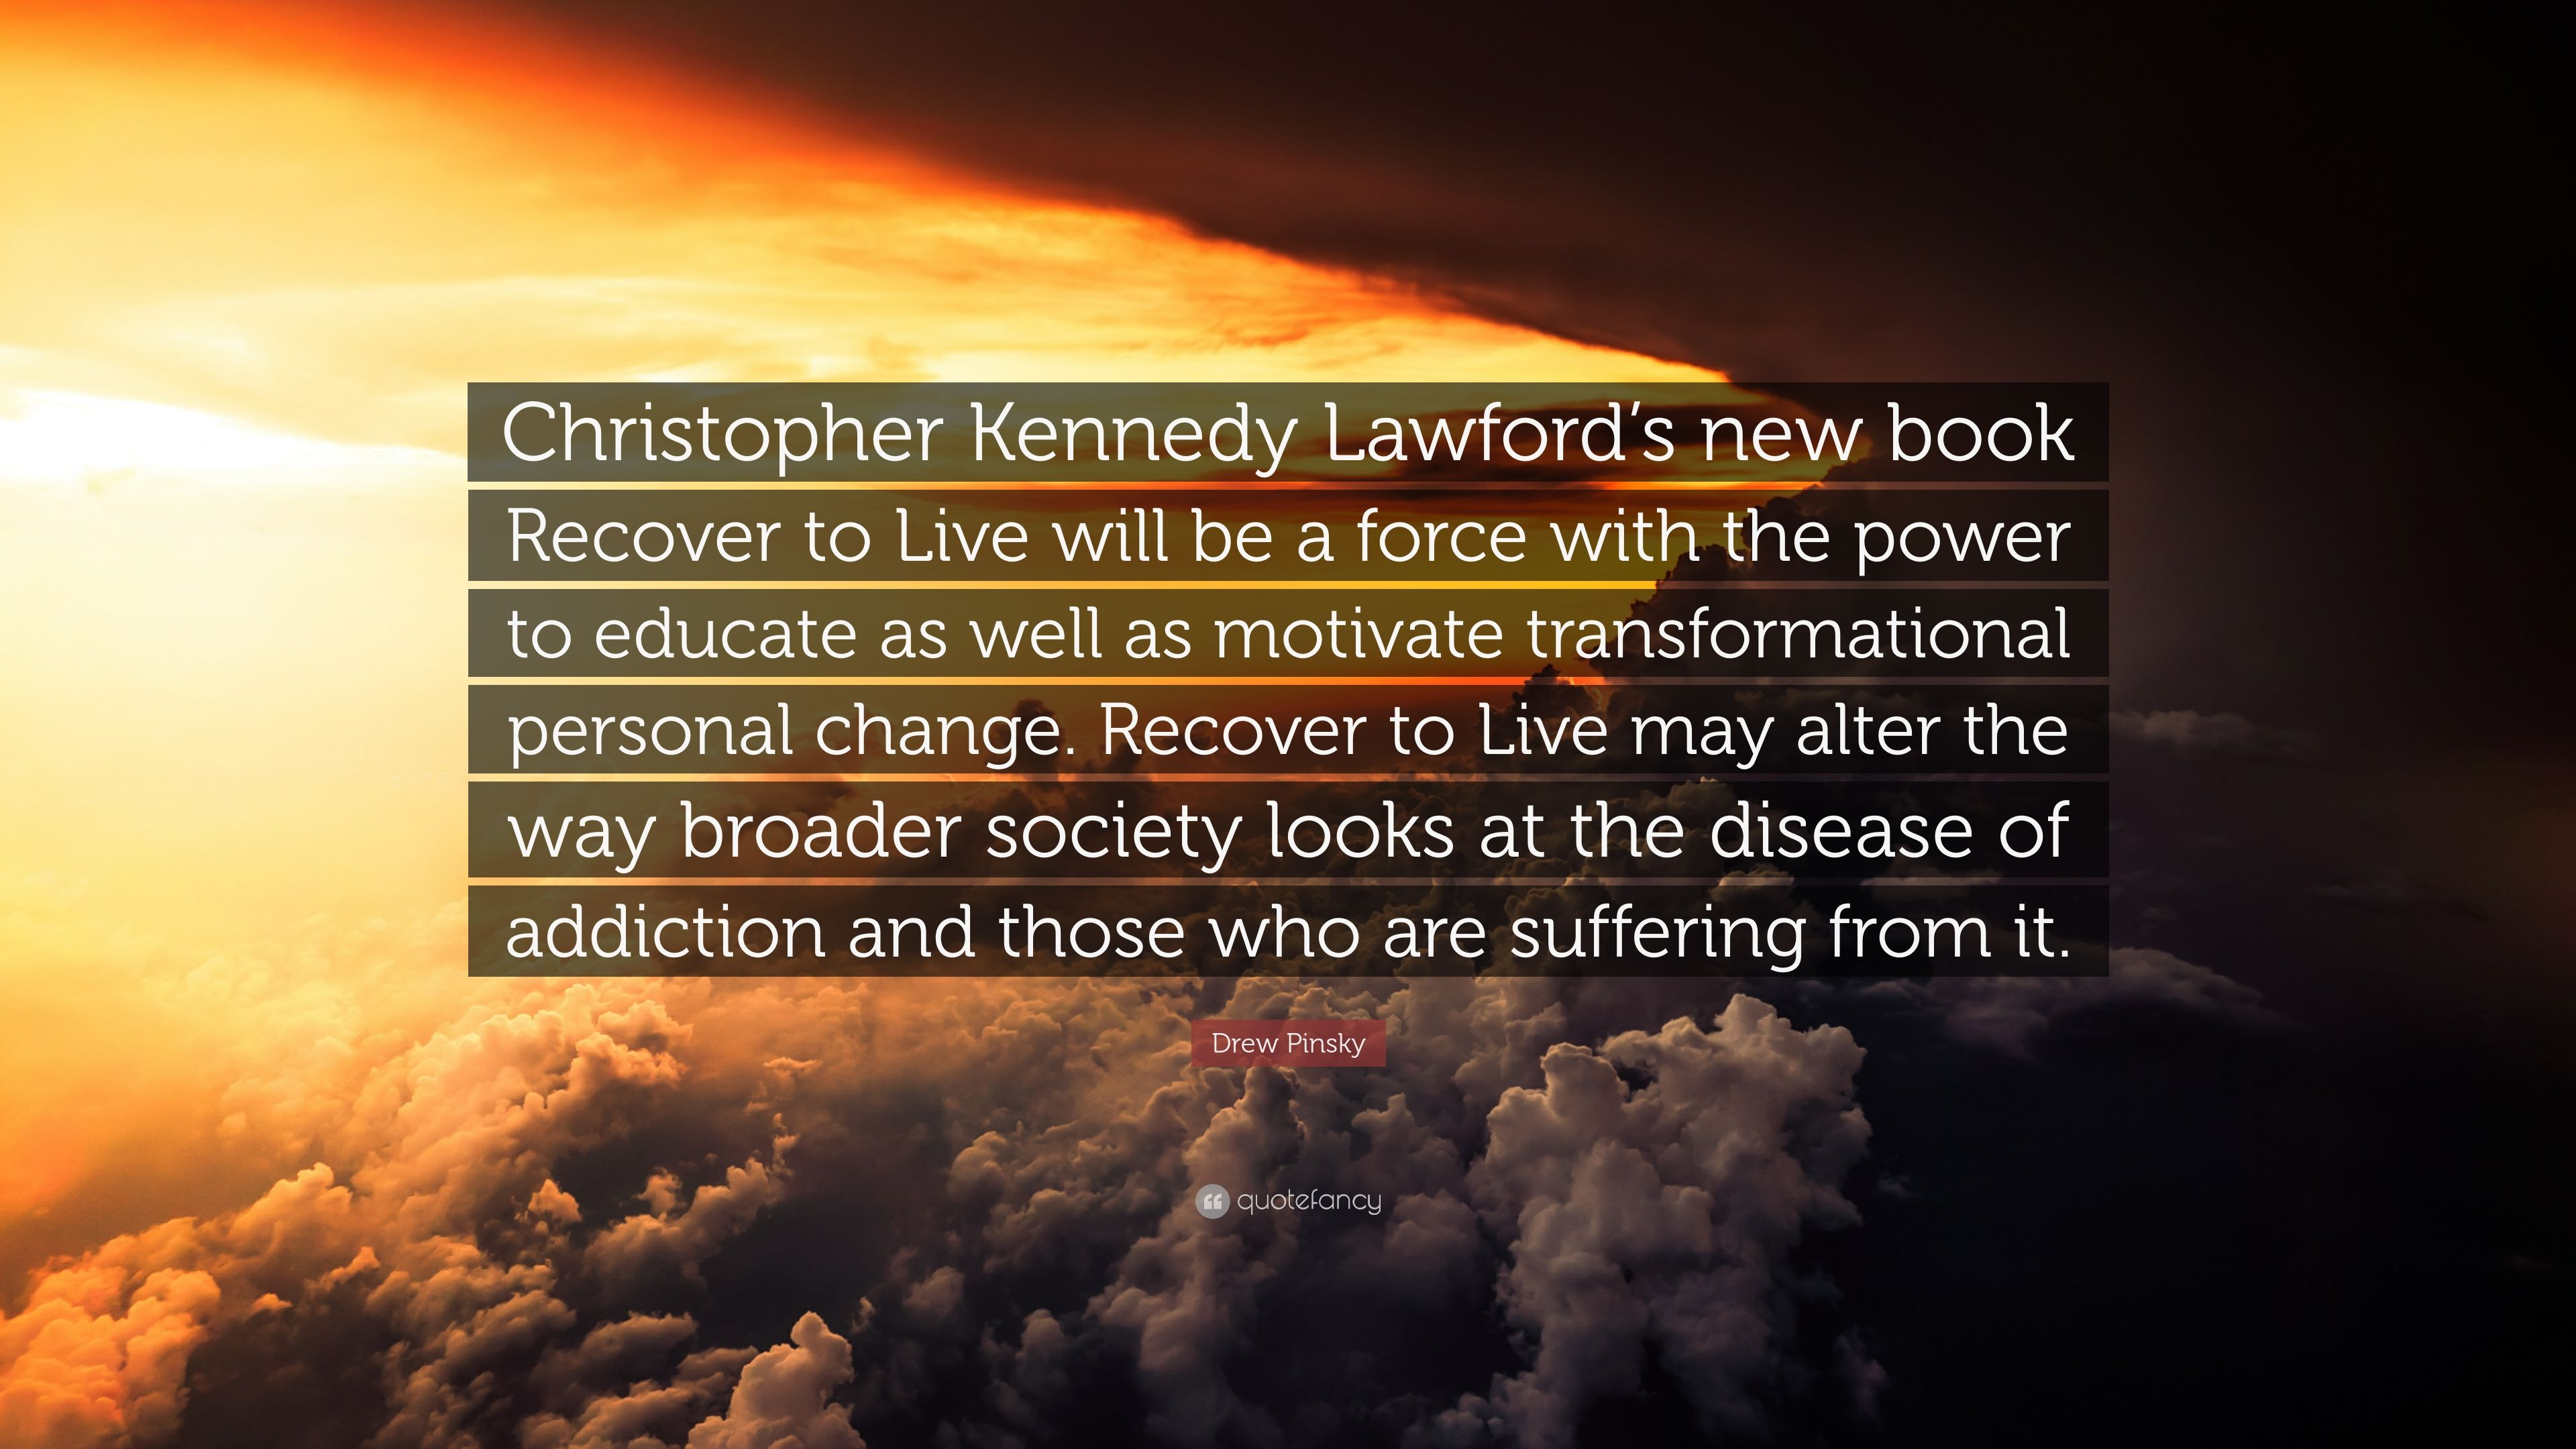 recover to live lawford christopher kennedy